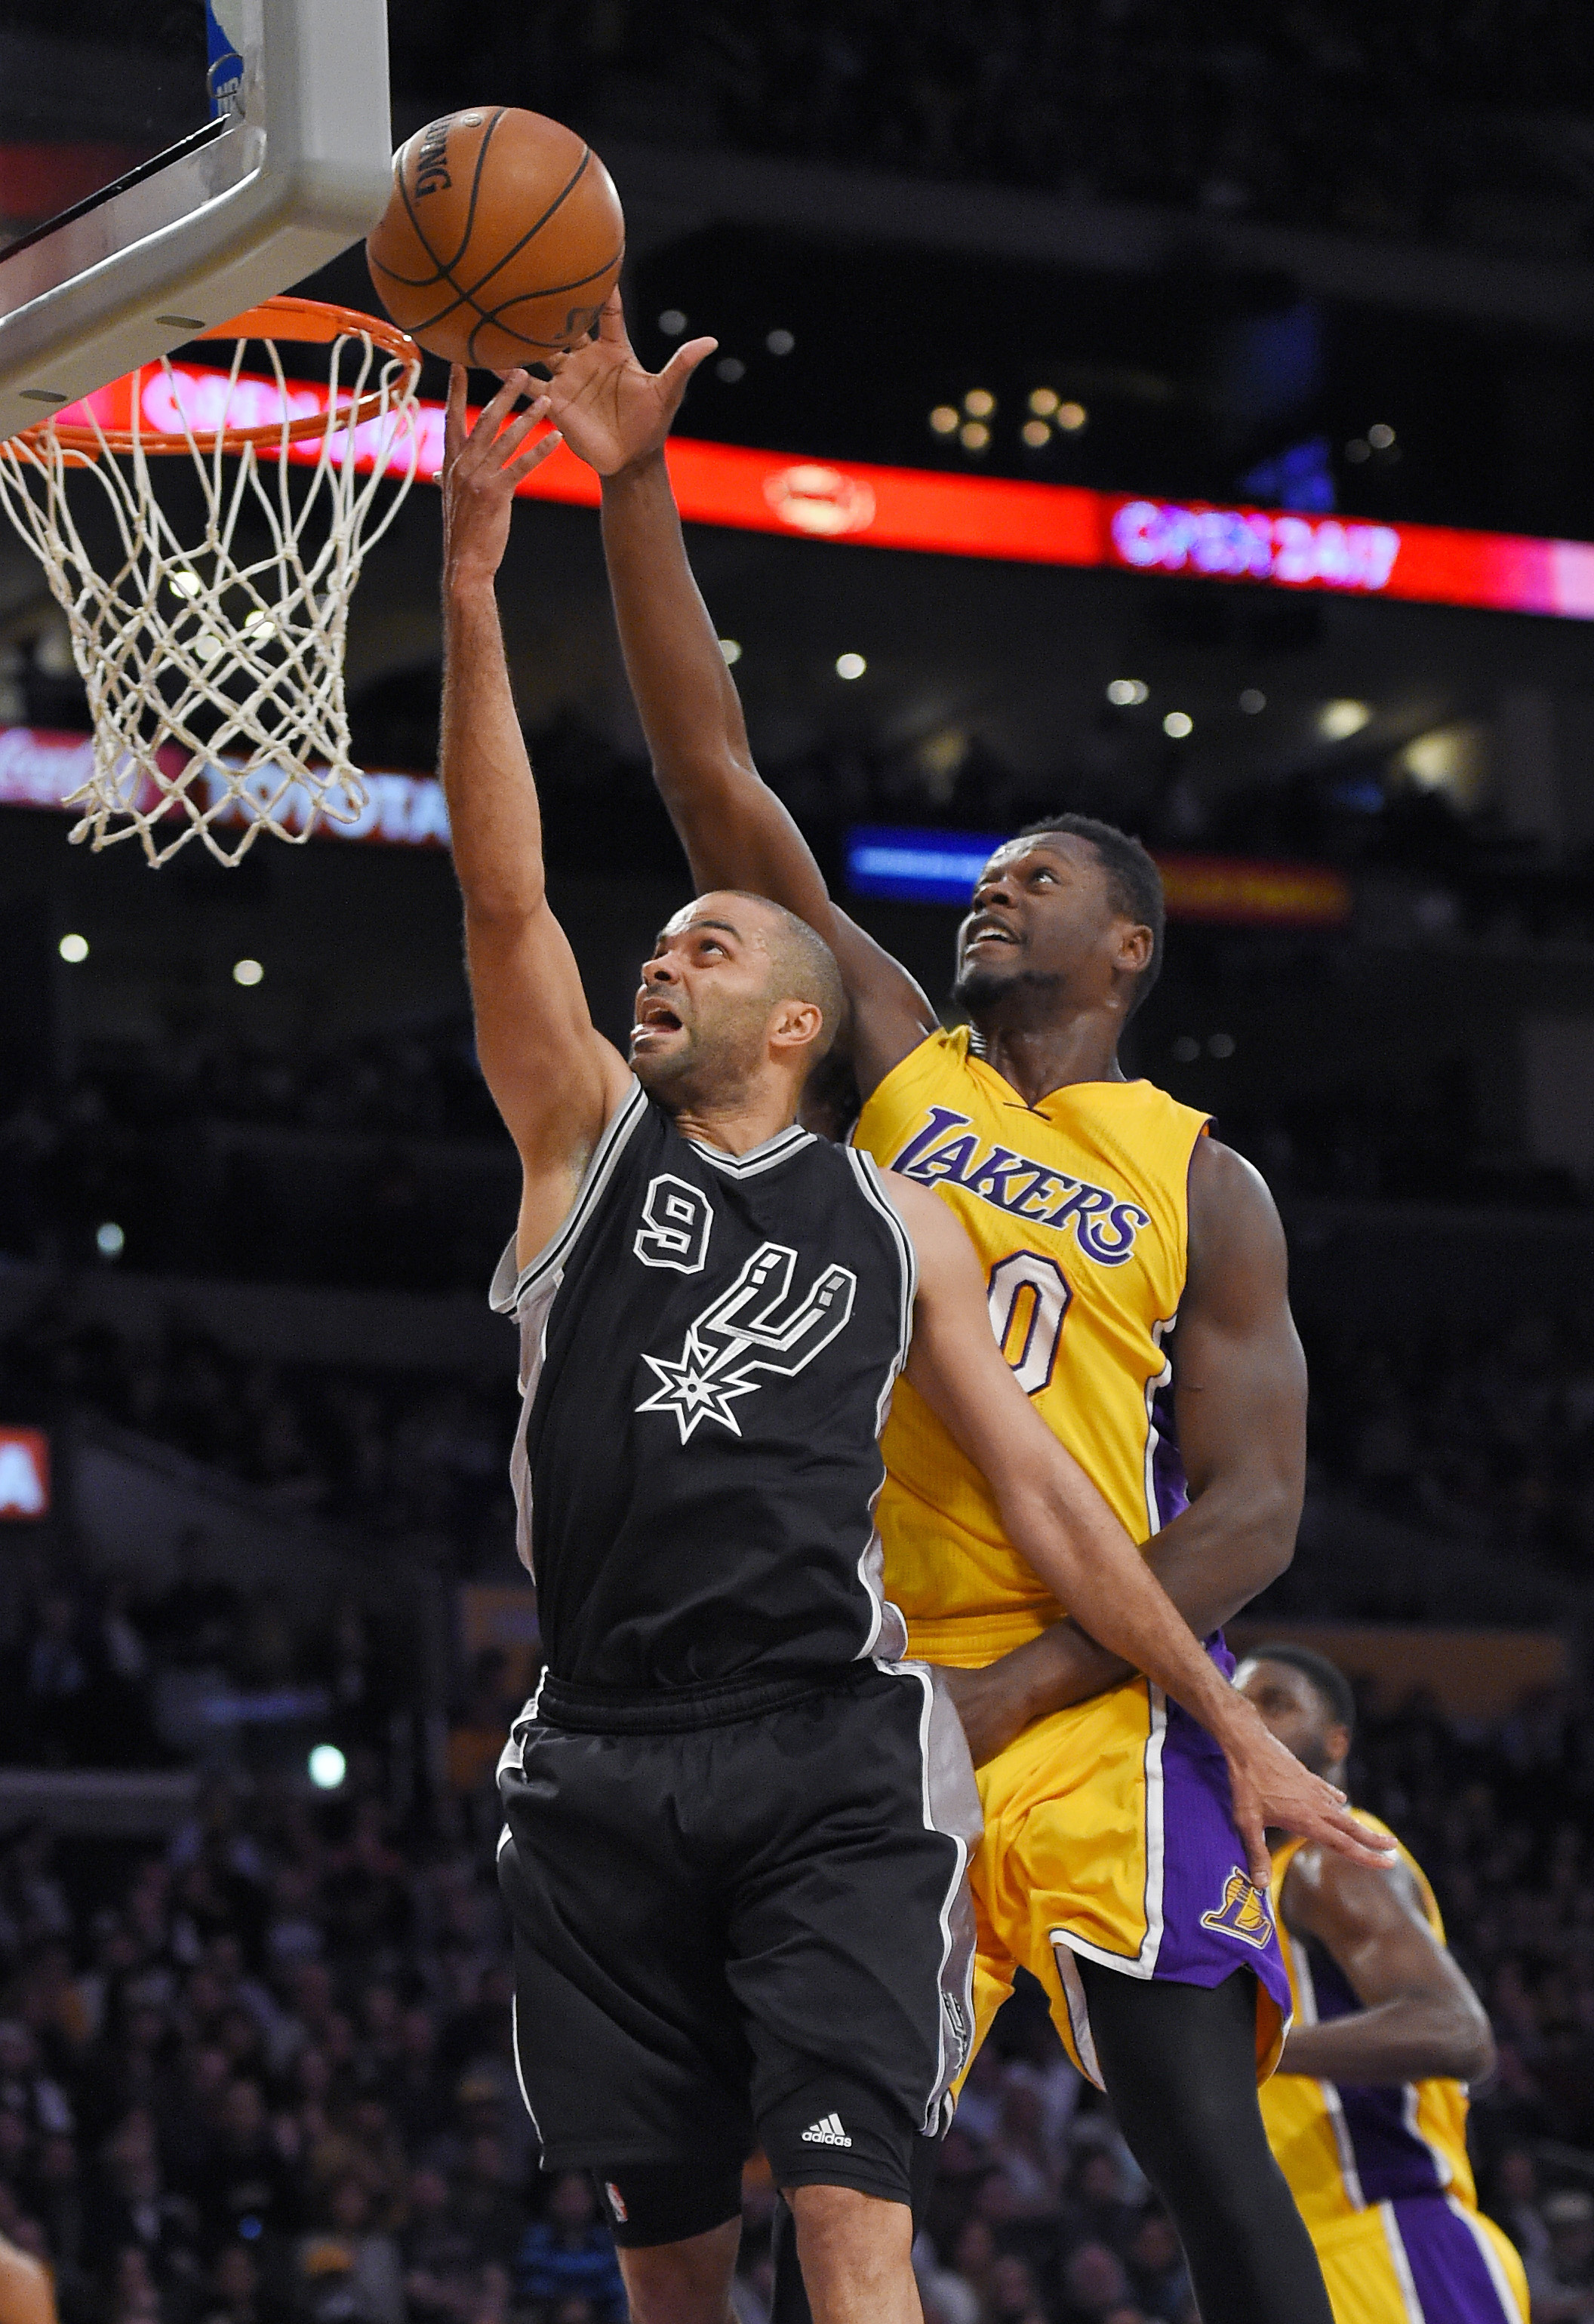 San Antonio Spurs guard Tony Parker, left, shoots as Los Angeles Lakers forward Julius Randle defends during the first half of an NBA basketball game Friday, Jan. 22, 2016, in Los Angeles. (AP Photo/Mark J. Terrill)